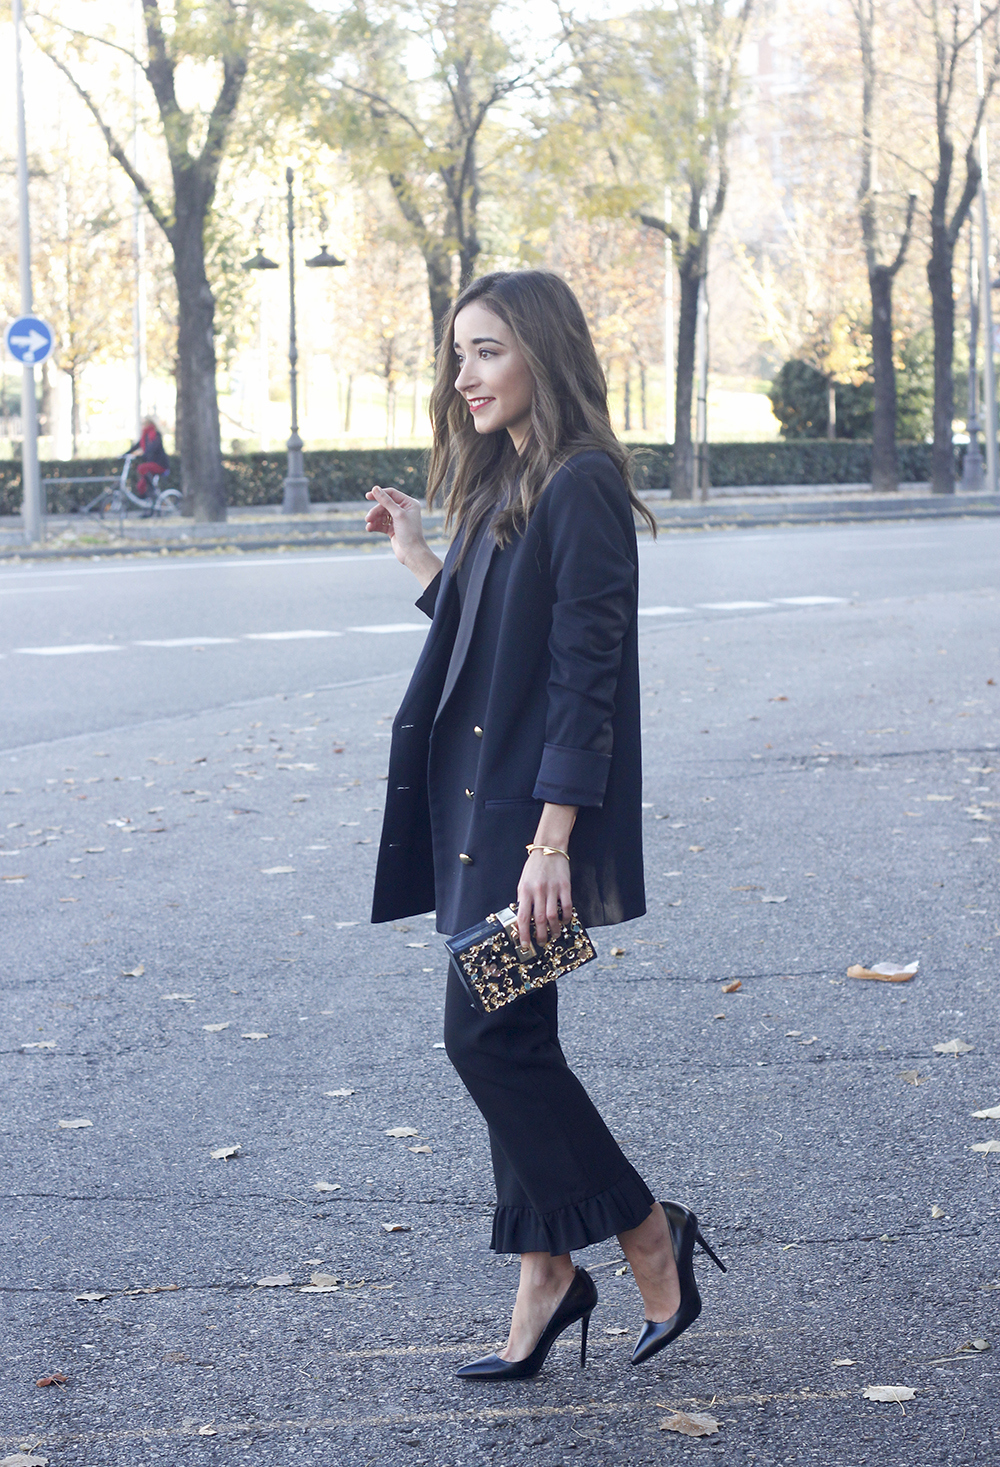 Black trousers with a ruffle on the bottom uterqüe bag accessories black heels blazer outfit style fashion04